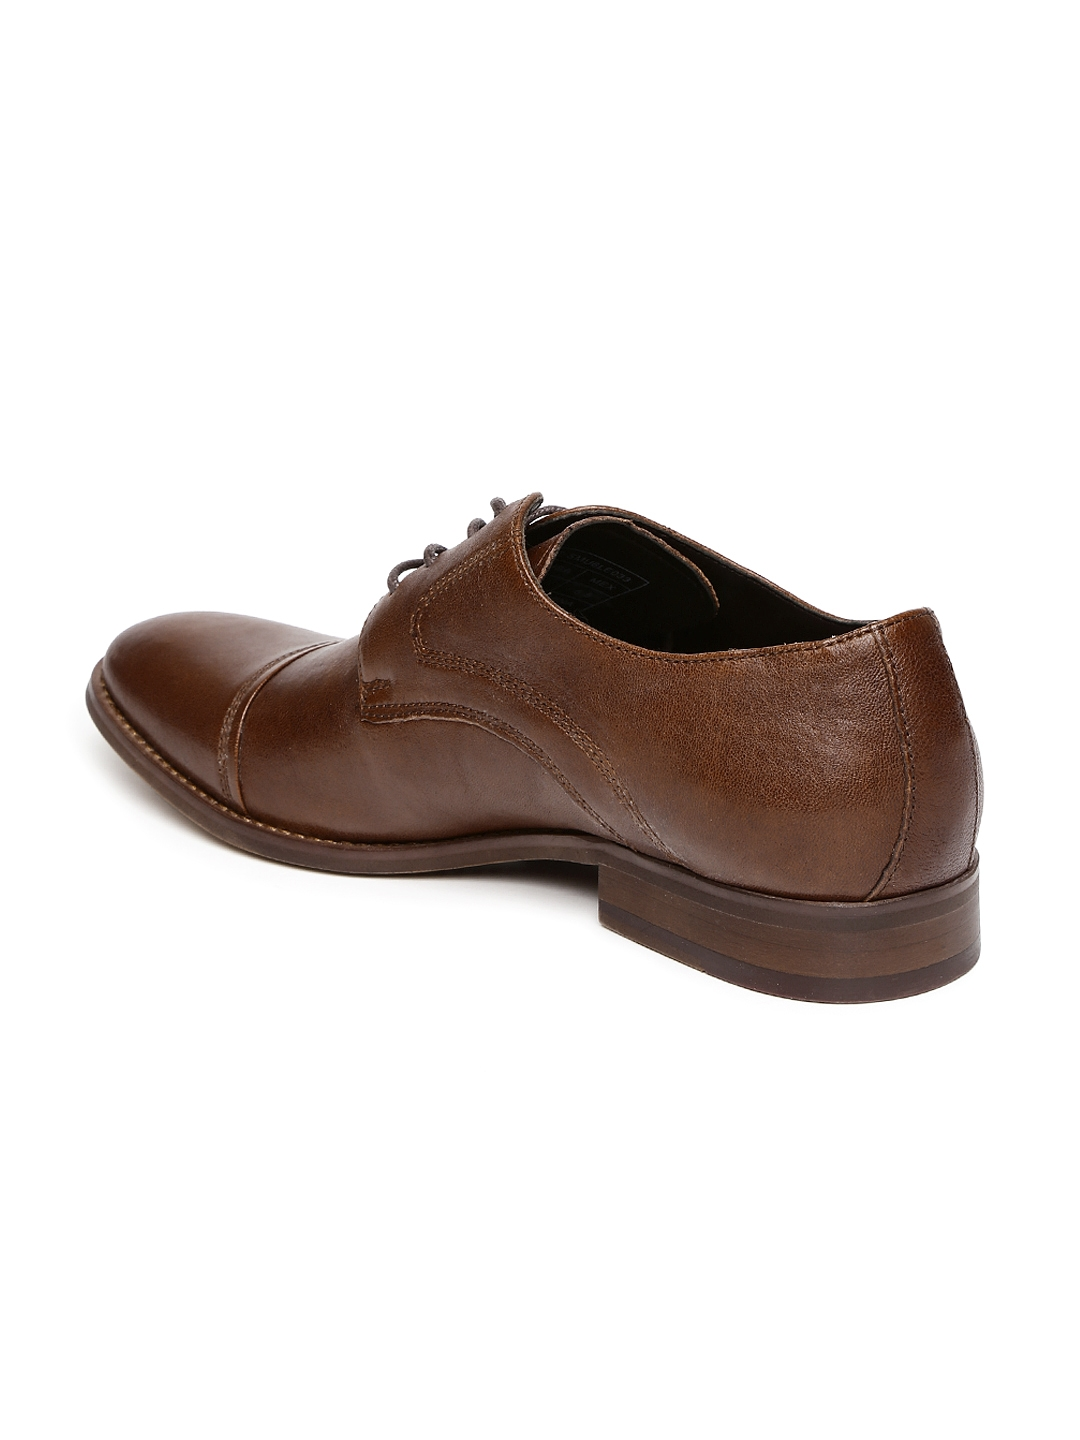 12270070db4 Buy Kenneth Cole Reaction Men Brown Leather Formal Shoes - Formal ...